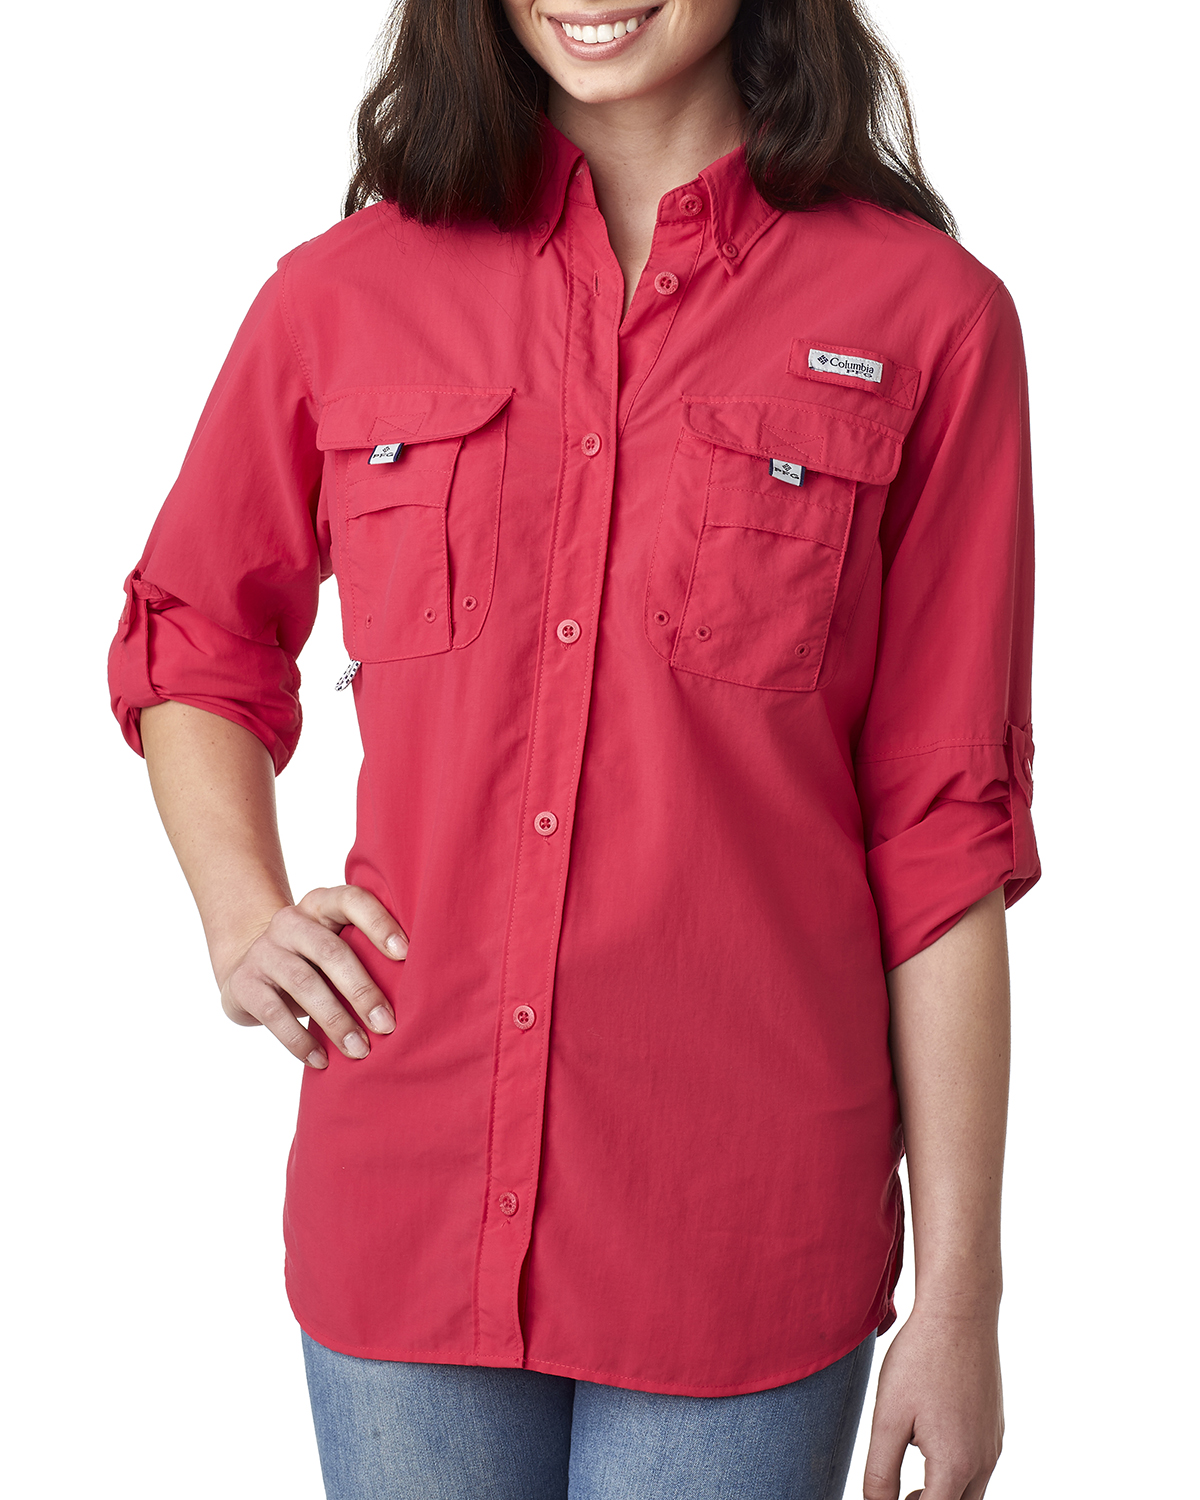 Columbia 7314 - Ladies' Bahama™ Long-Sleeve Shirt